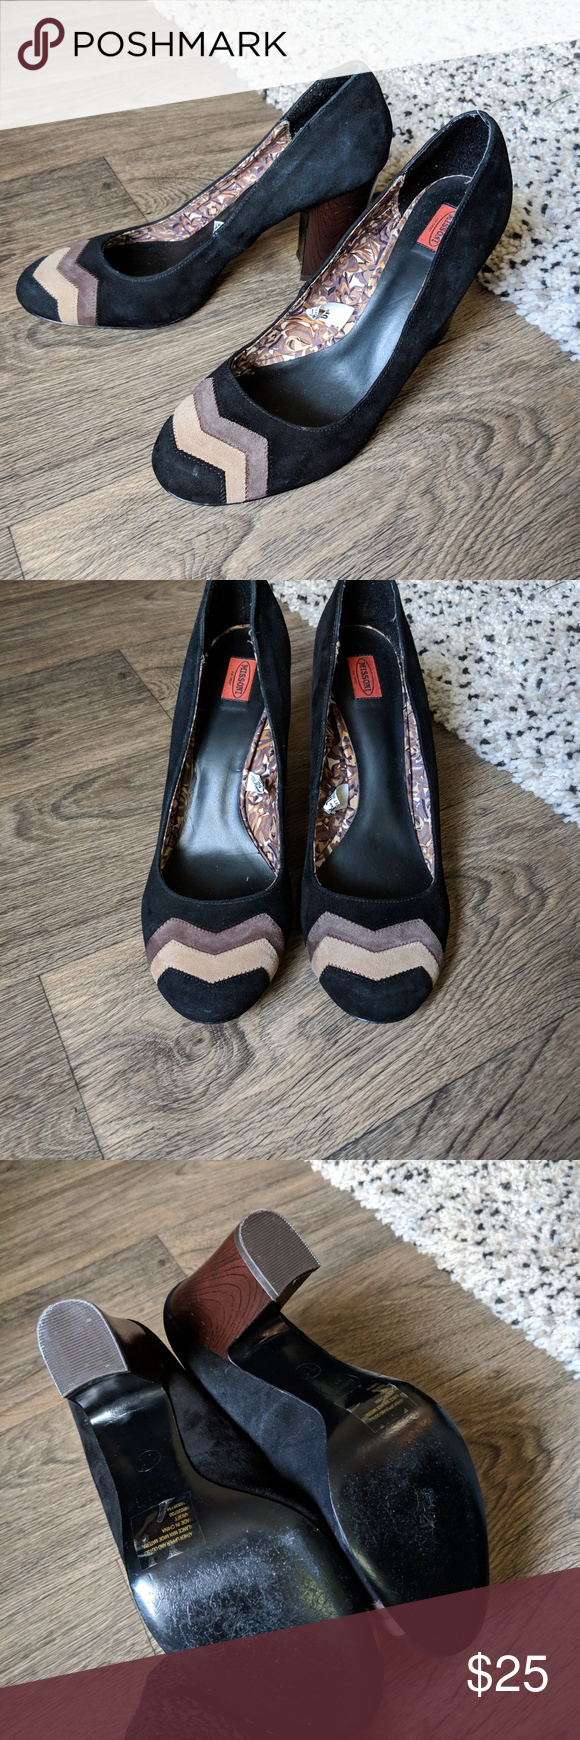 5154be7e1e5c MISSONI for Target Black Suede Zig Zag Pumps MISSONI for Target Black Suede Zig  Zag Pumps